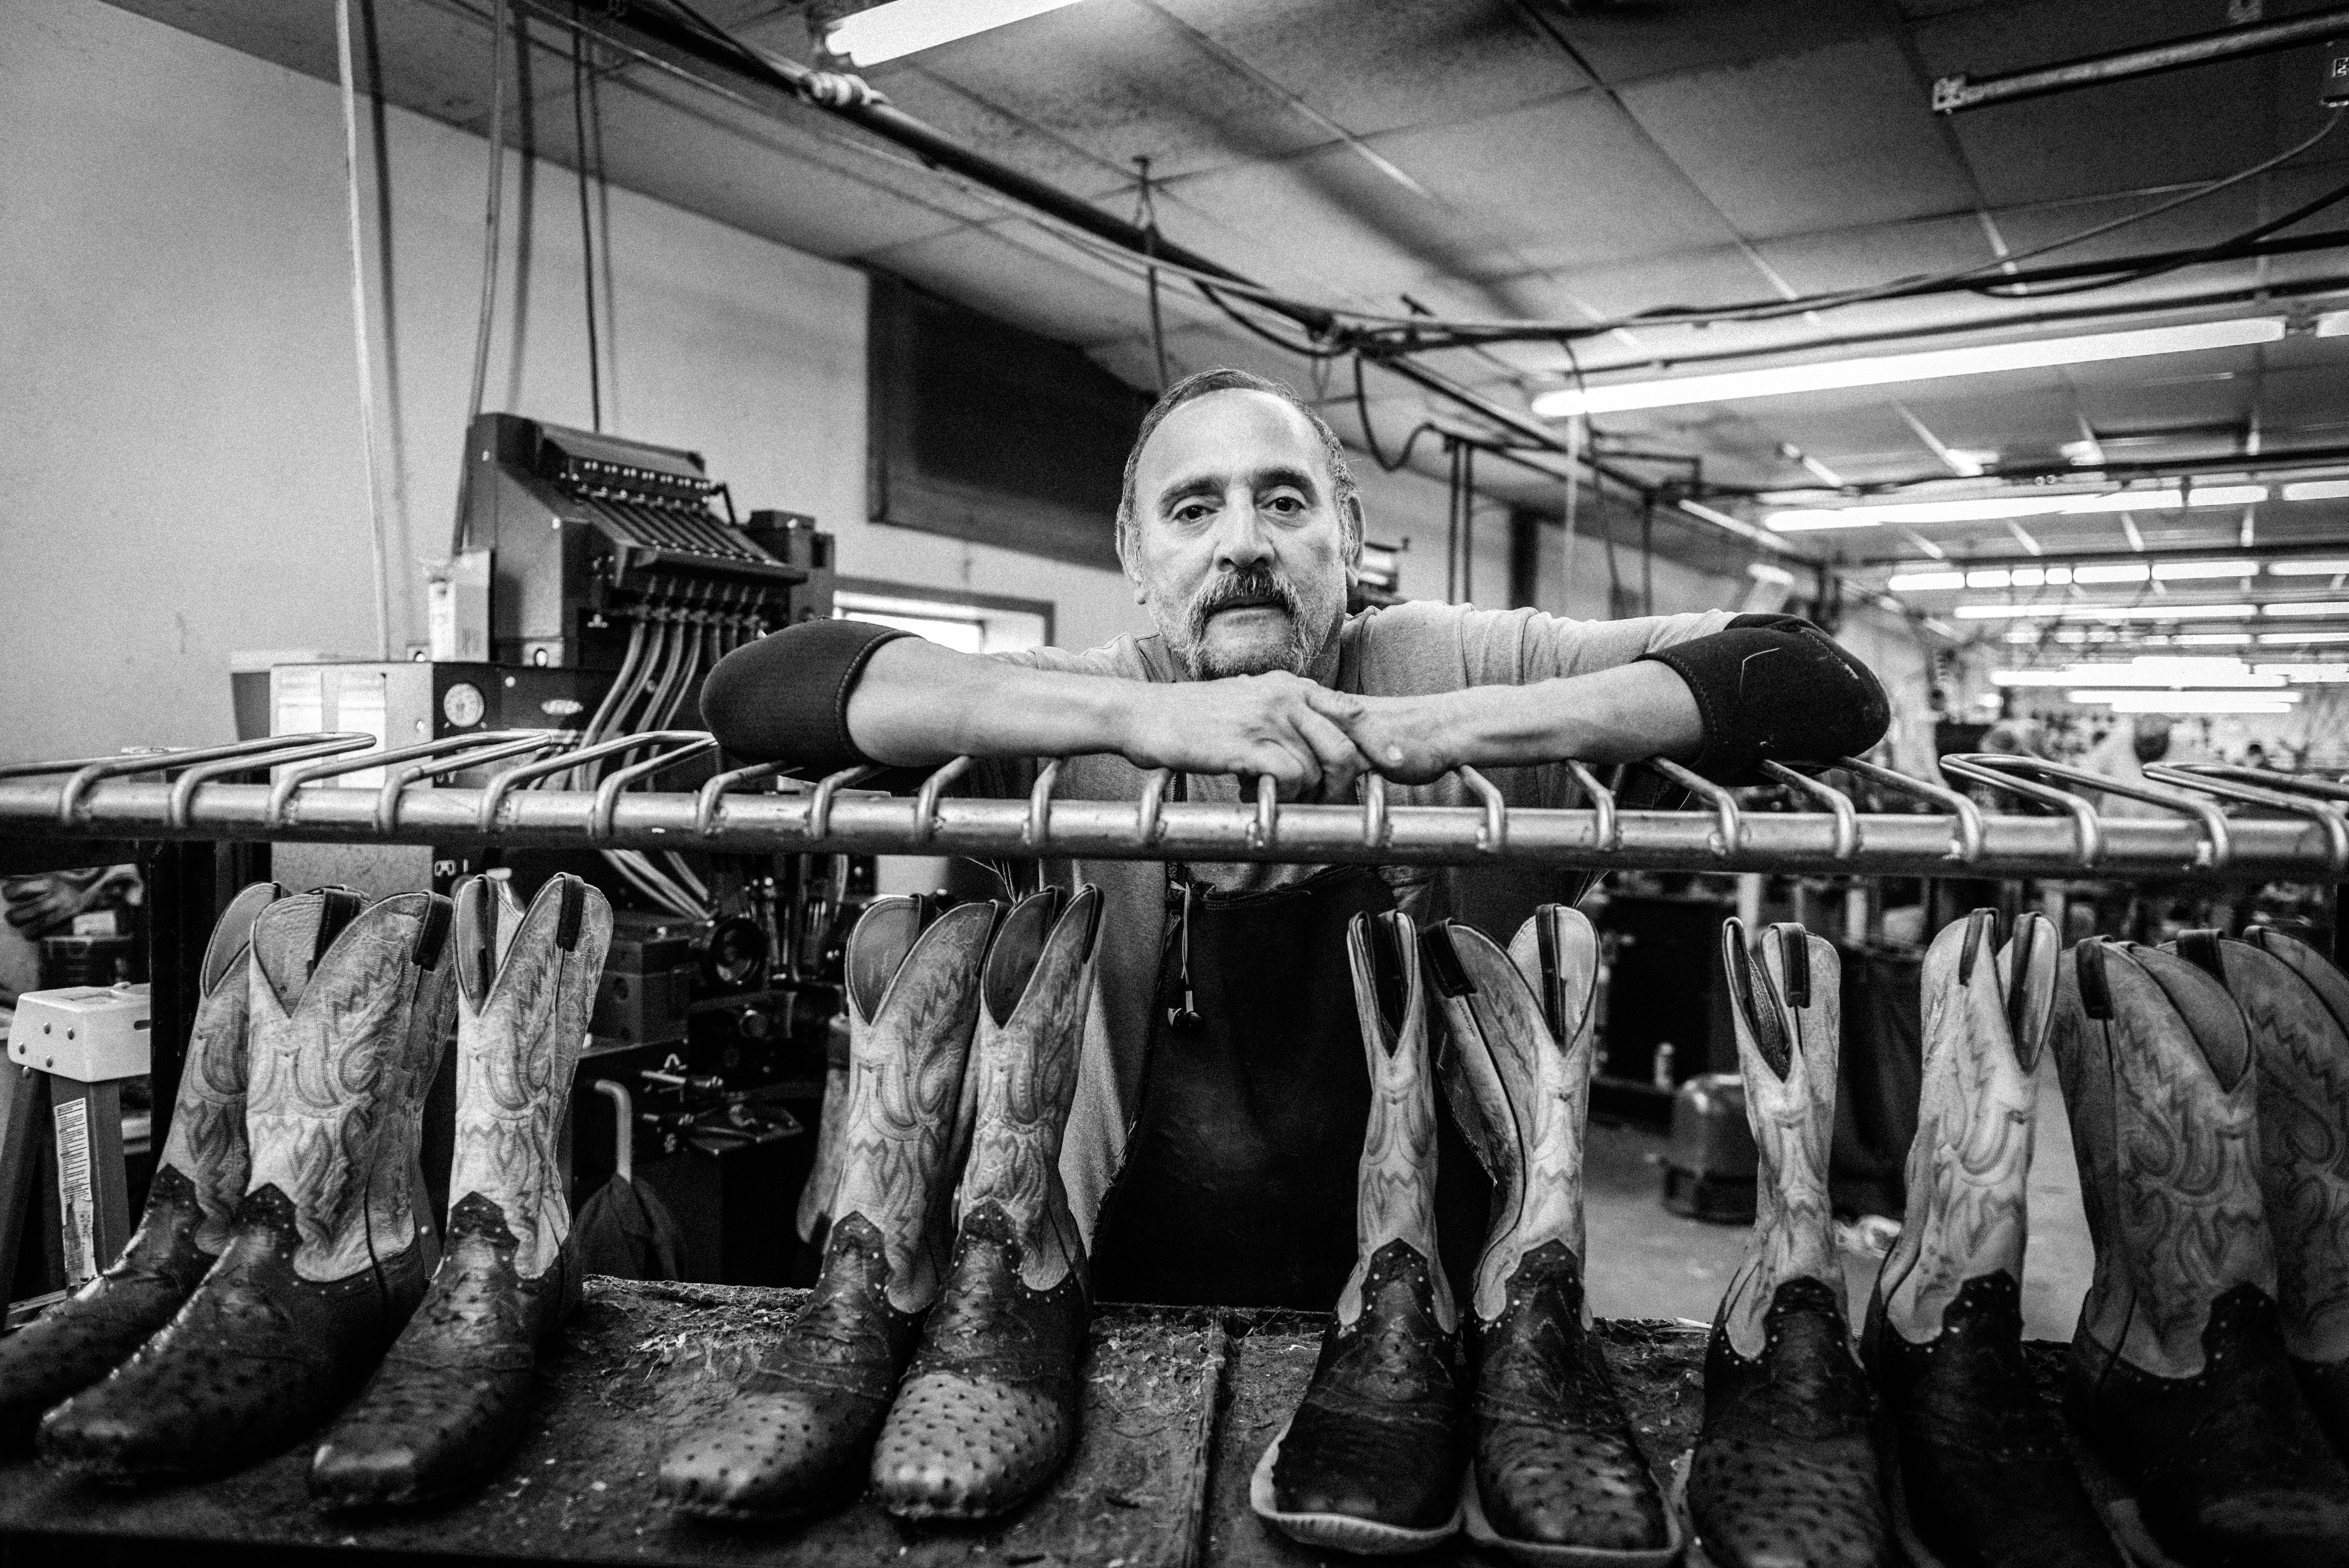 Ezekiel, a bootmaker at Fenoglio Boot Co. with 20 years' experience